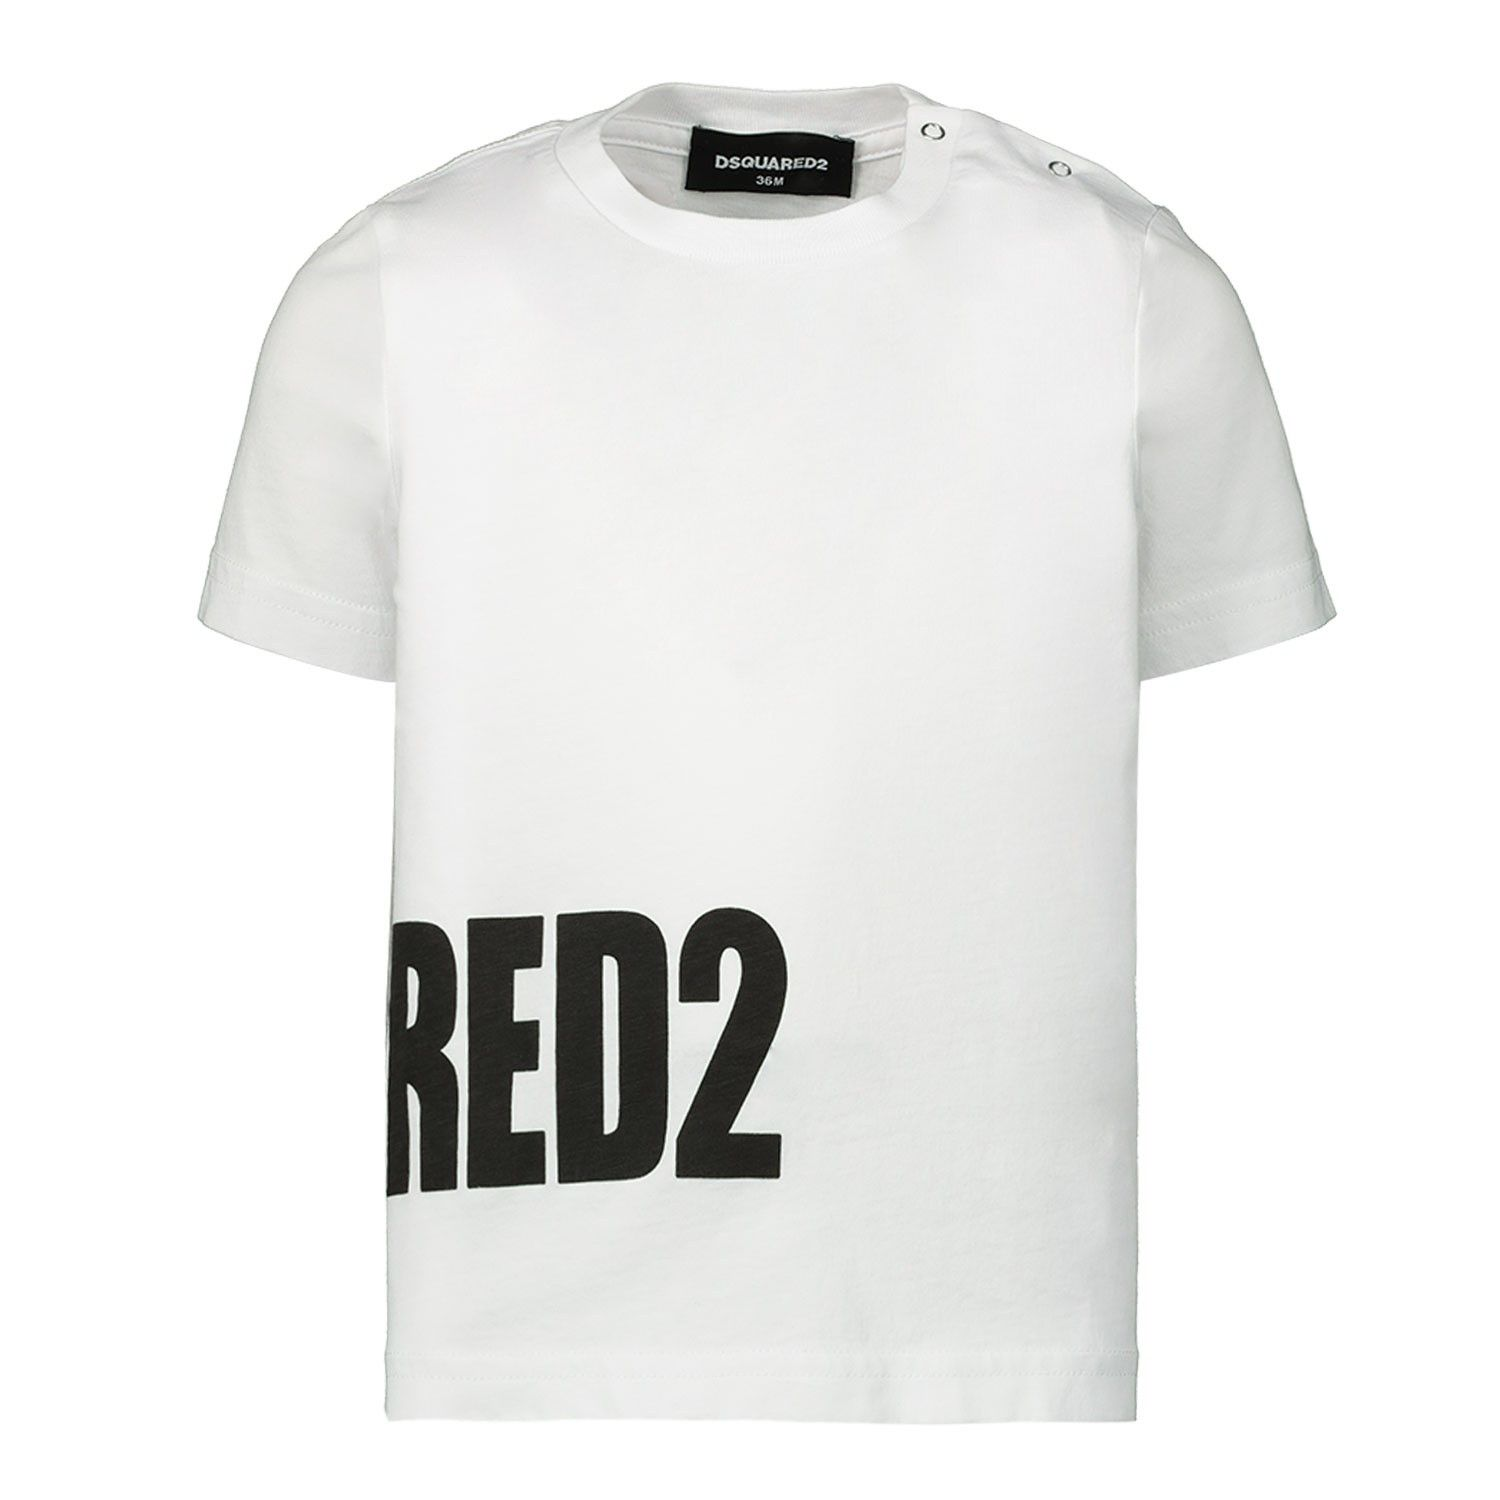 Picture of Dsquared2 DQ040Y baby shirt white